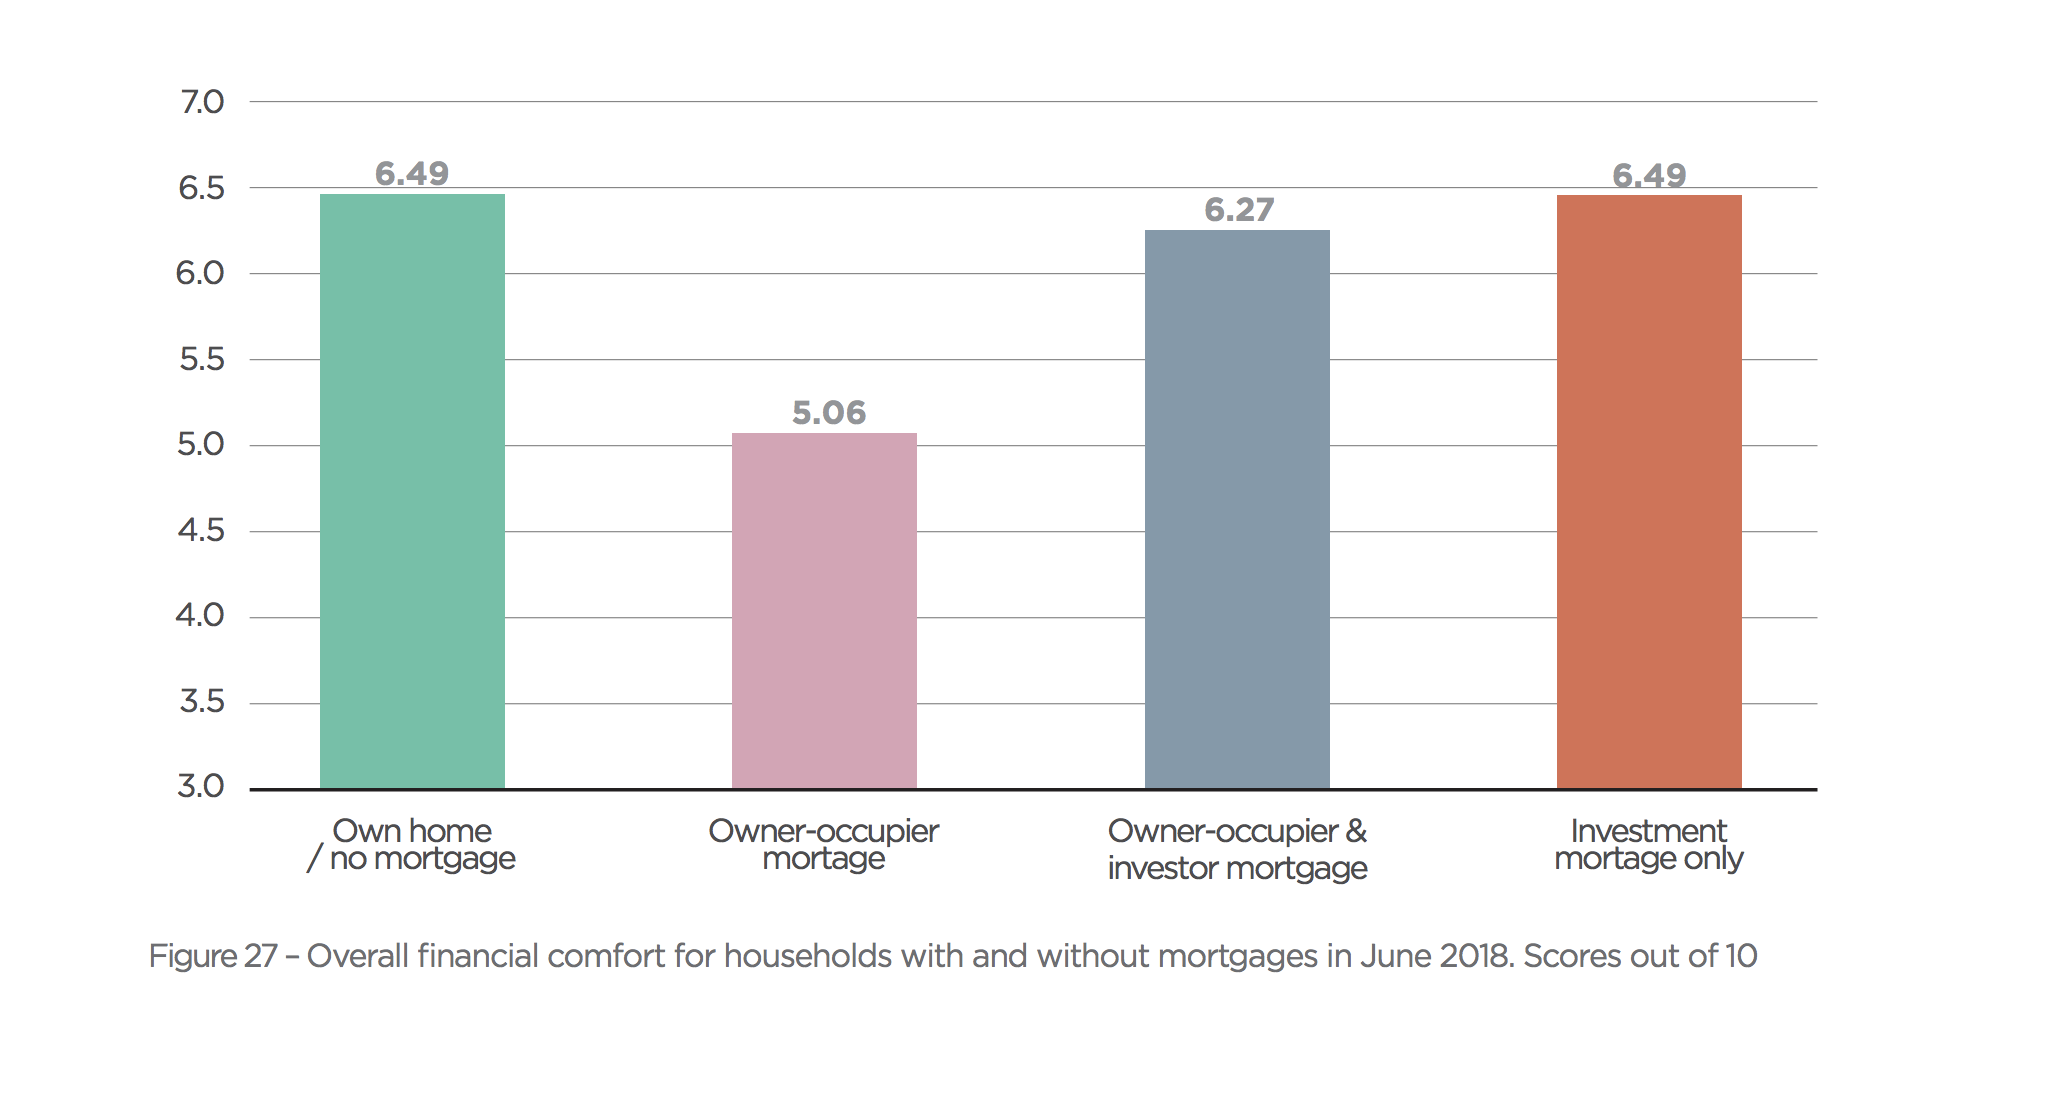 Leveraged investors better off than owner-occupiers with mortgages.